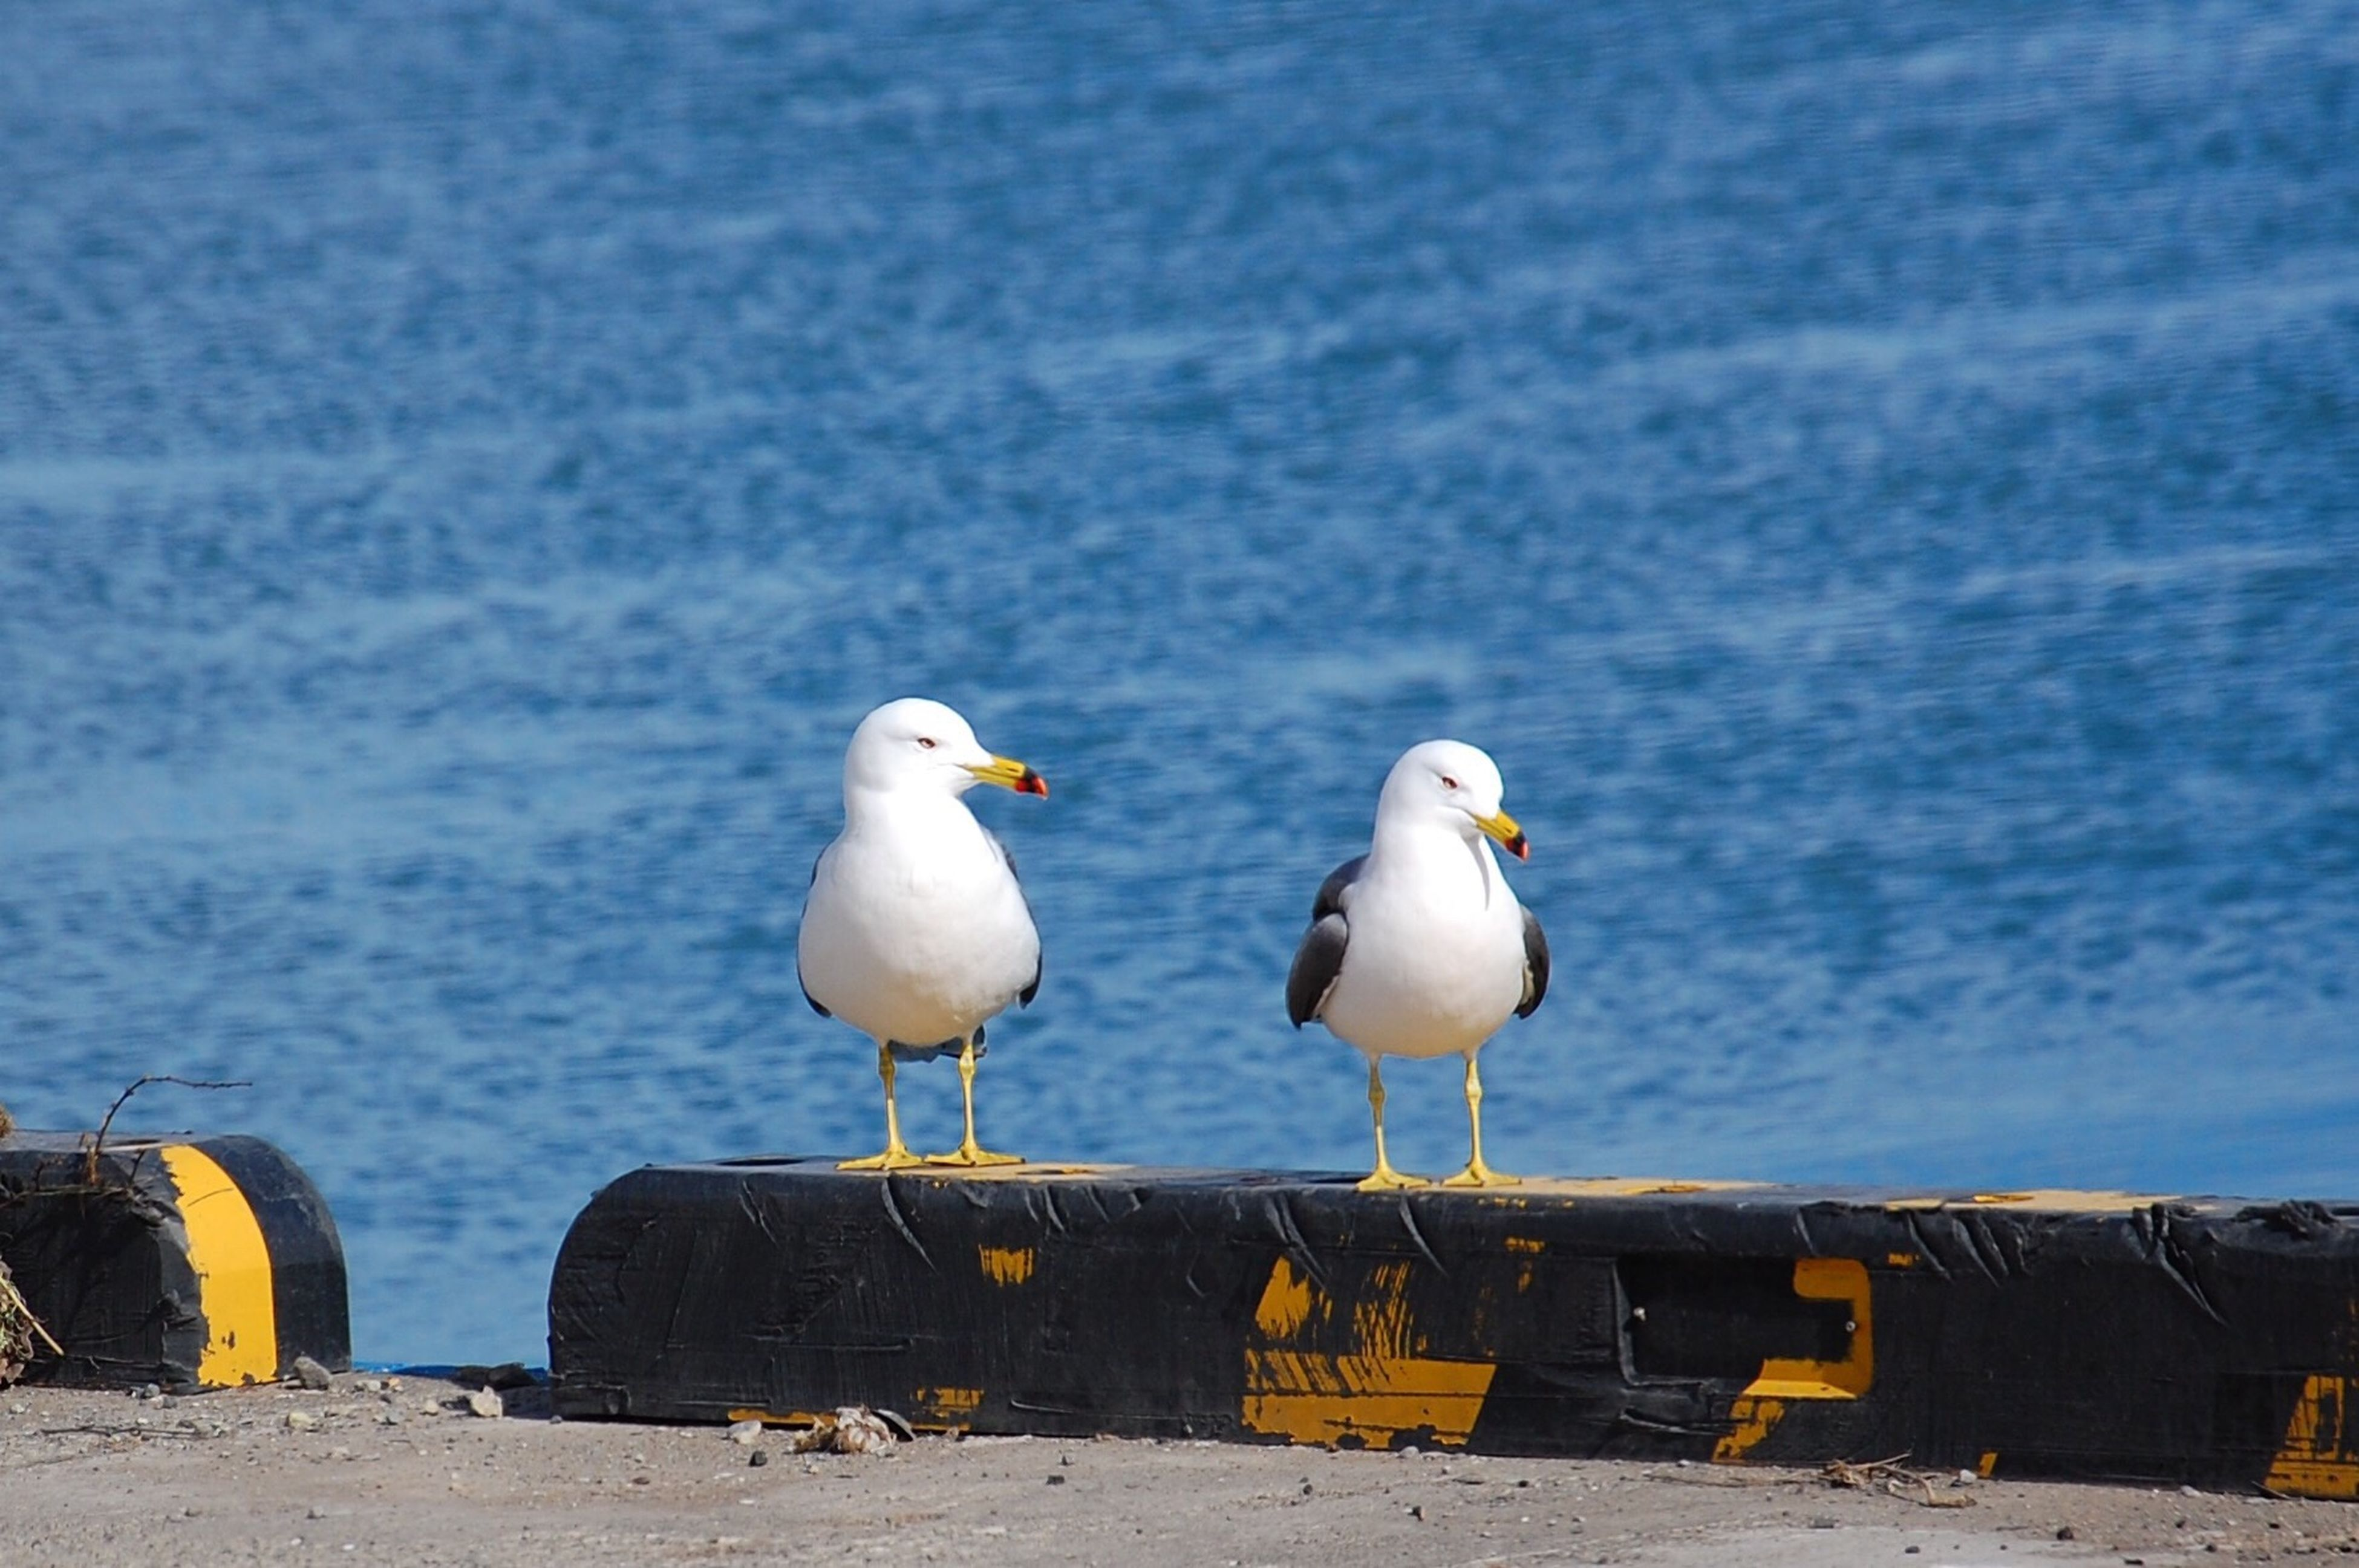 animal themes, bird, animals in the wild, seagull, water, sea, wildlife, perching, rippled, blue, ocean, togetherness, focus on foreground, tranquility, shore, nature, day, outdoors, zoology, seascape, seaside